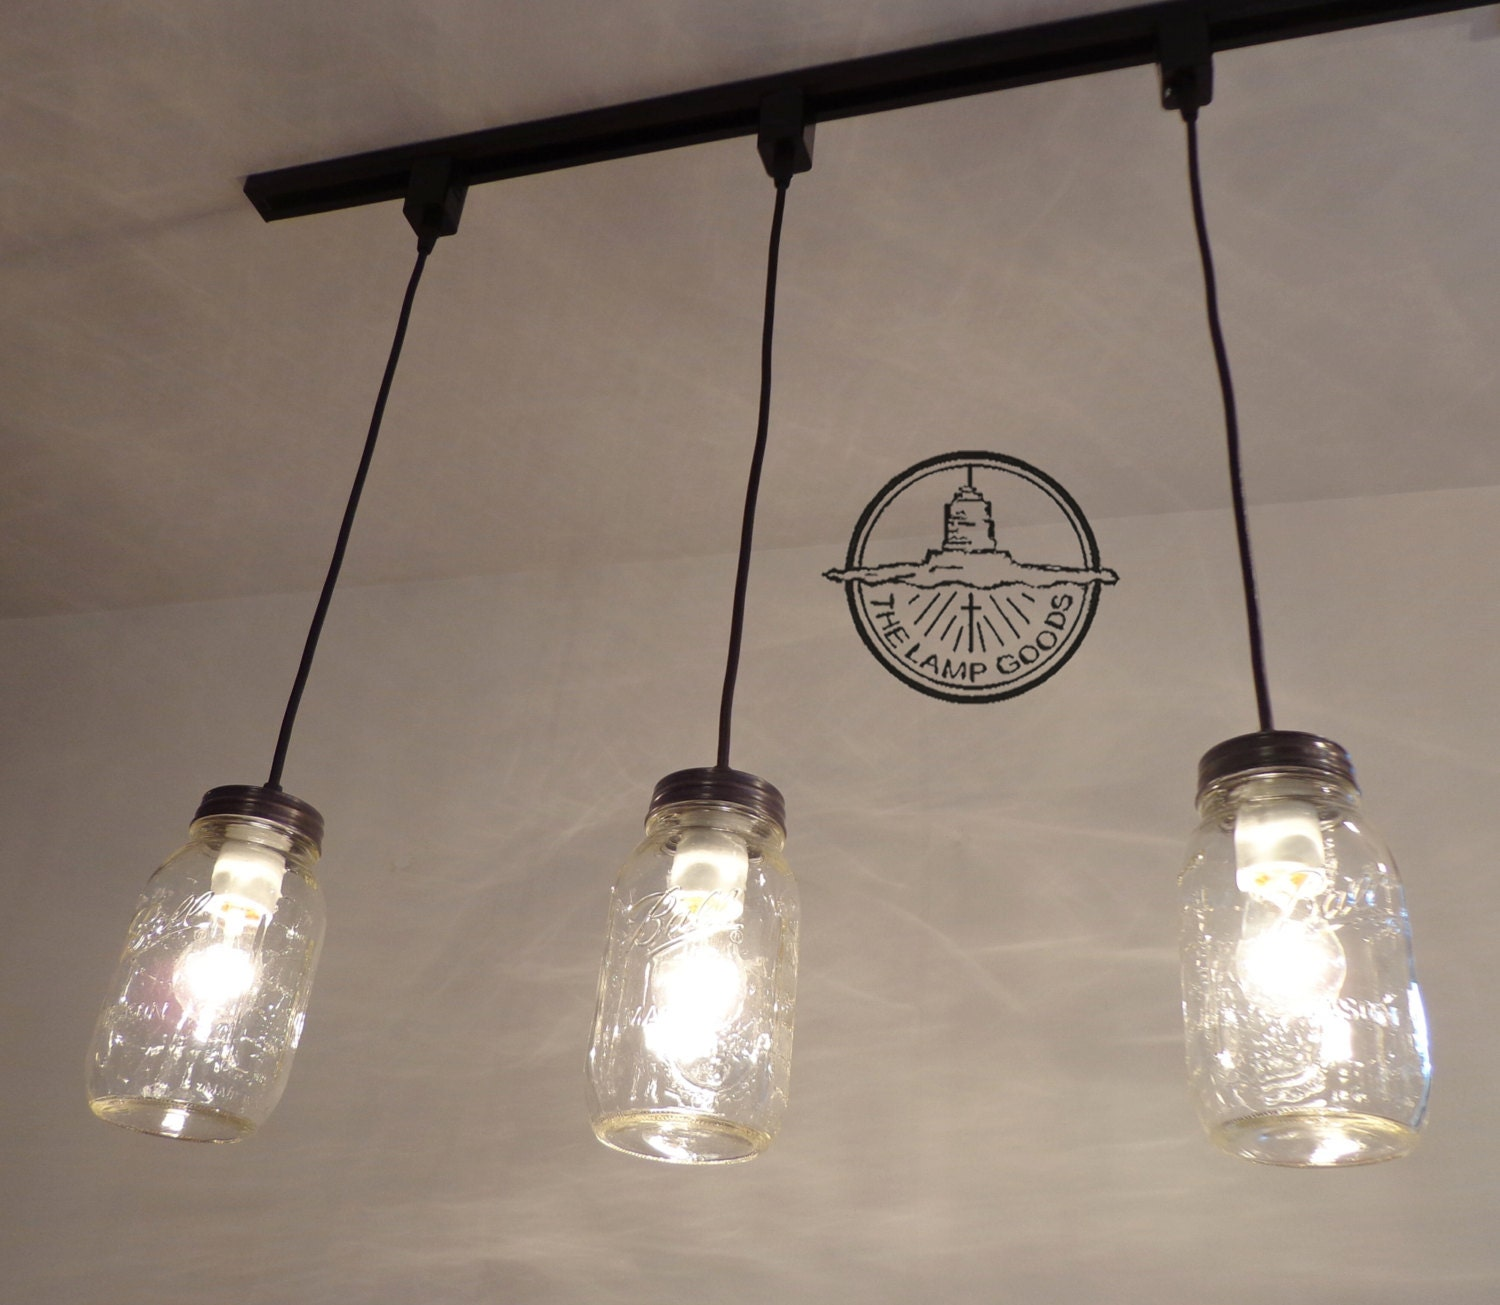 Mason jar track lighting pendant new quart chandelier zoom aloadofball Gallery